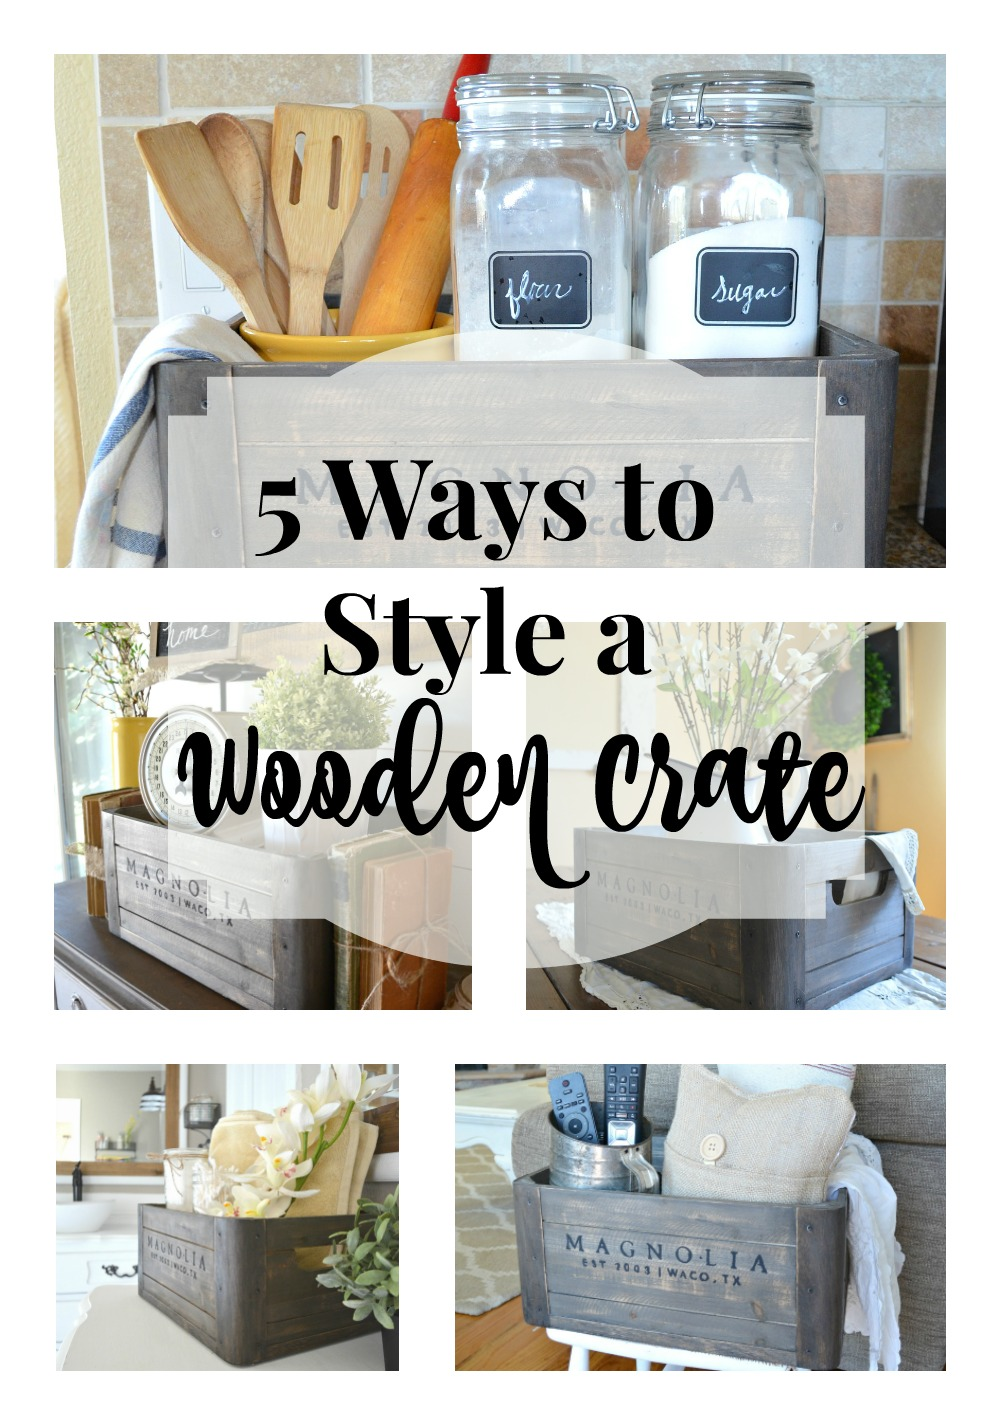 5 Ways to Style a Wooden Crate